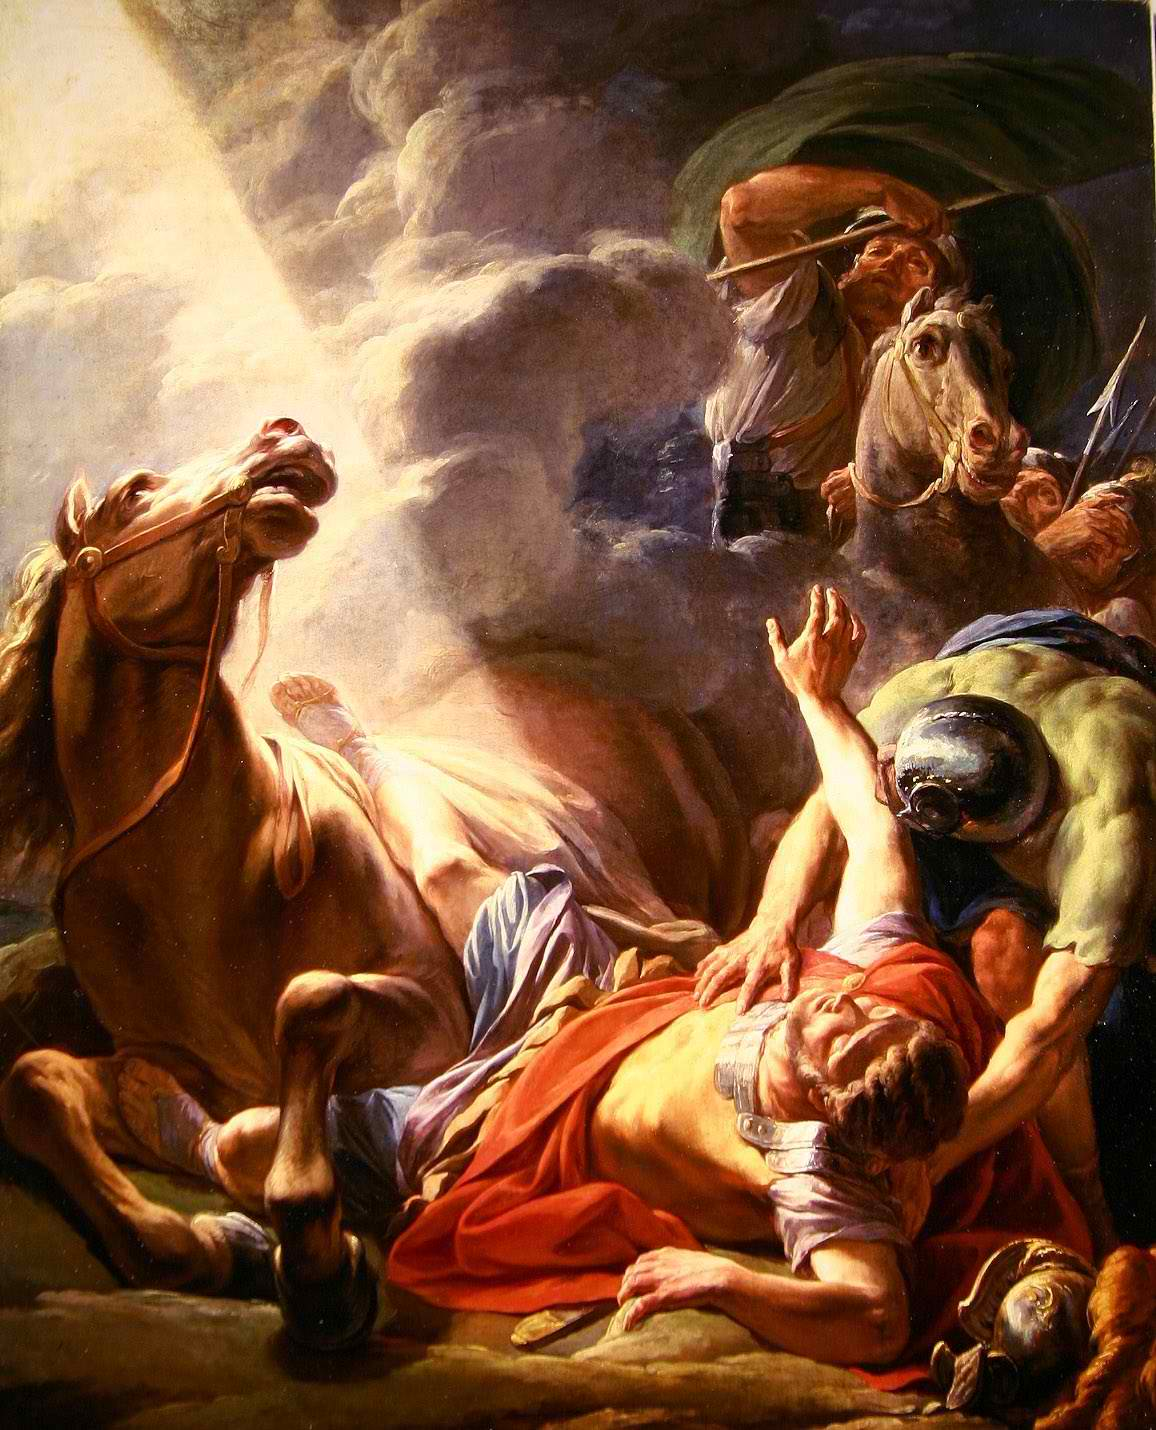 Christ meets Saul on the road to Damascus